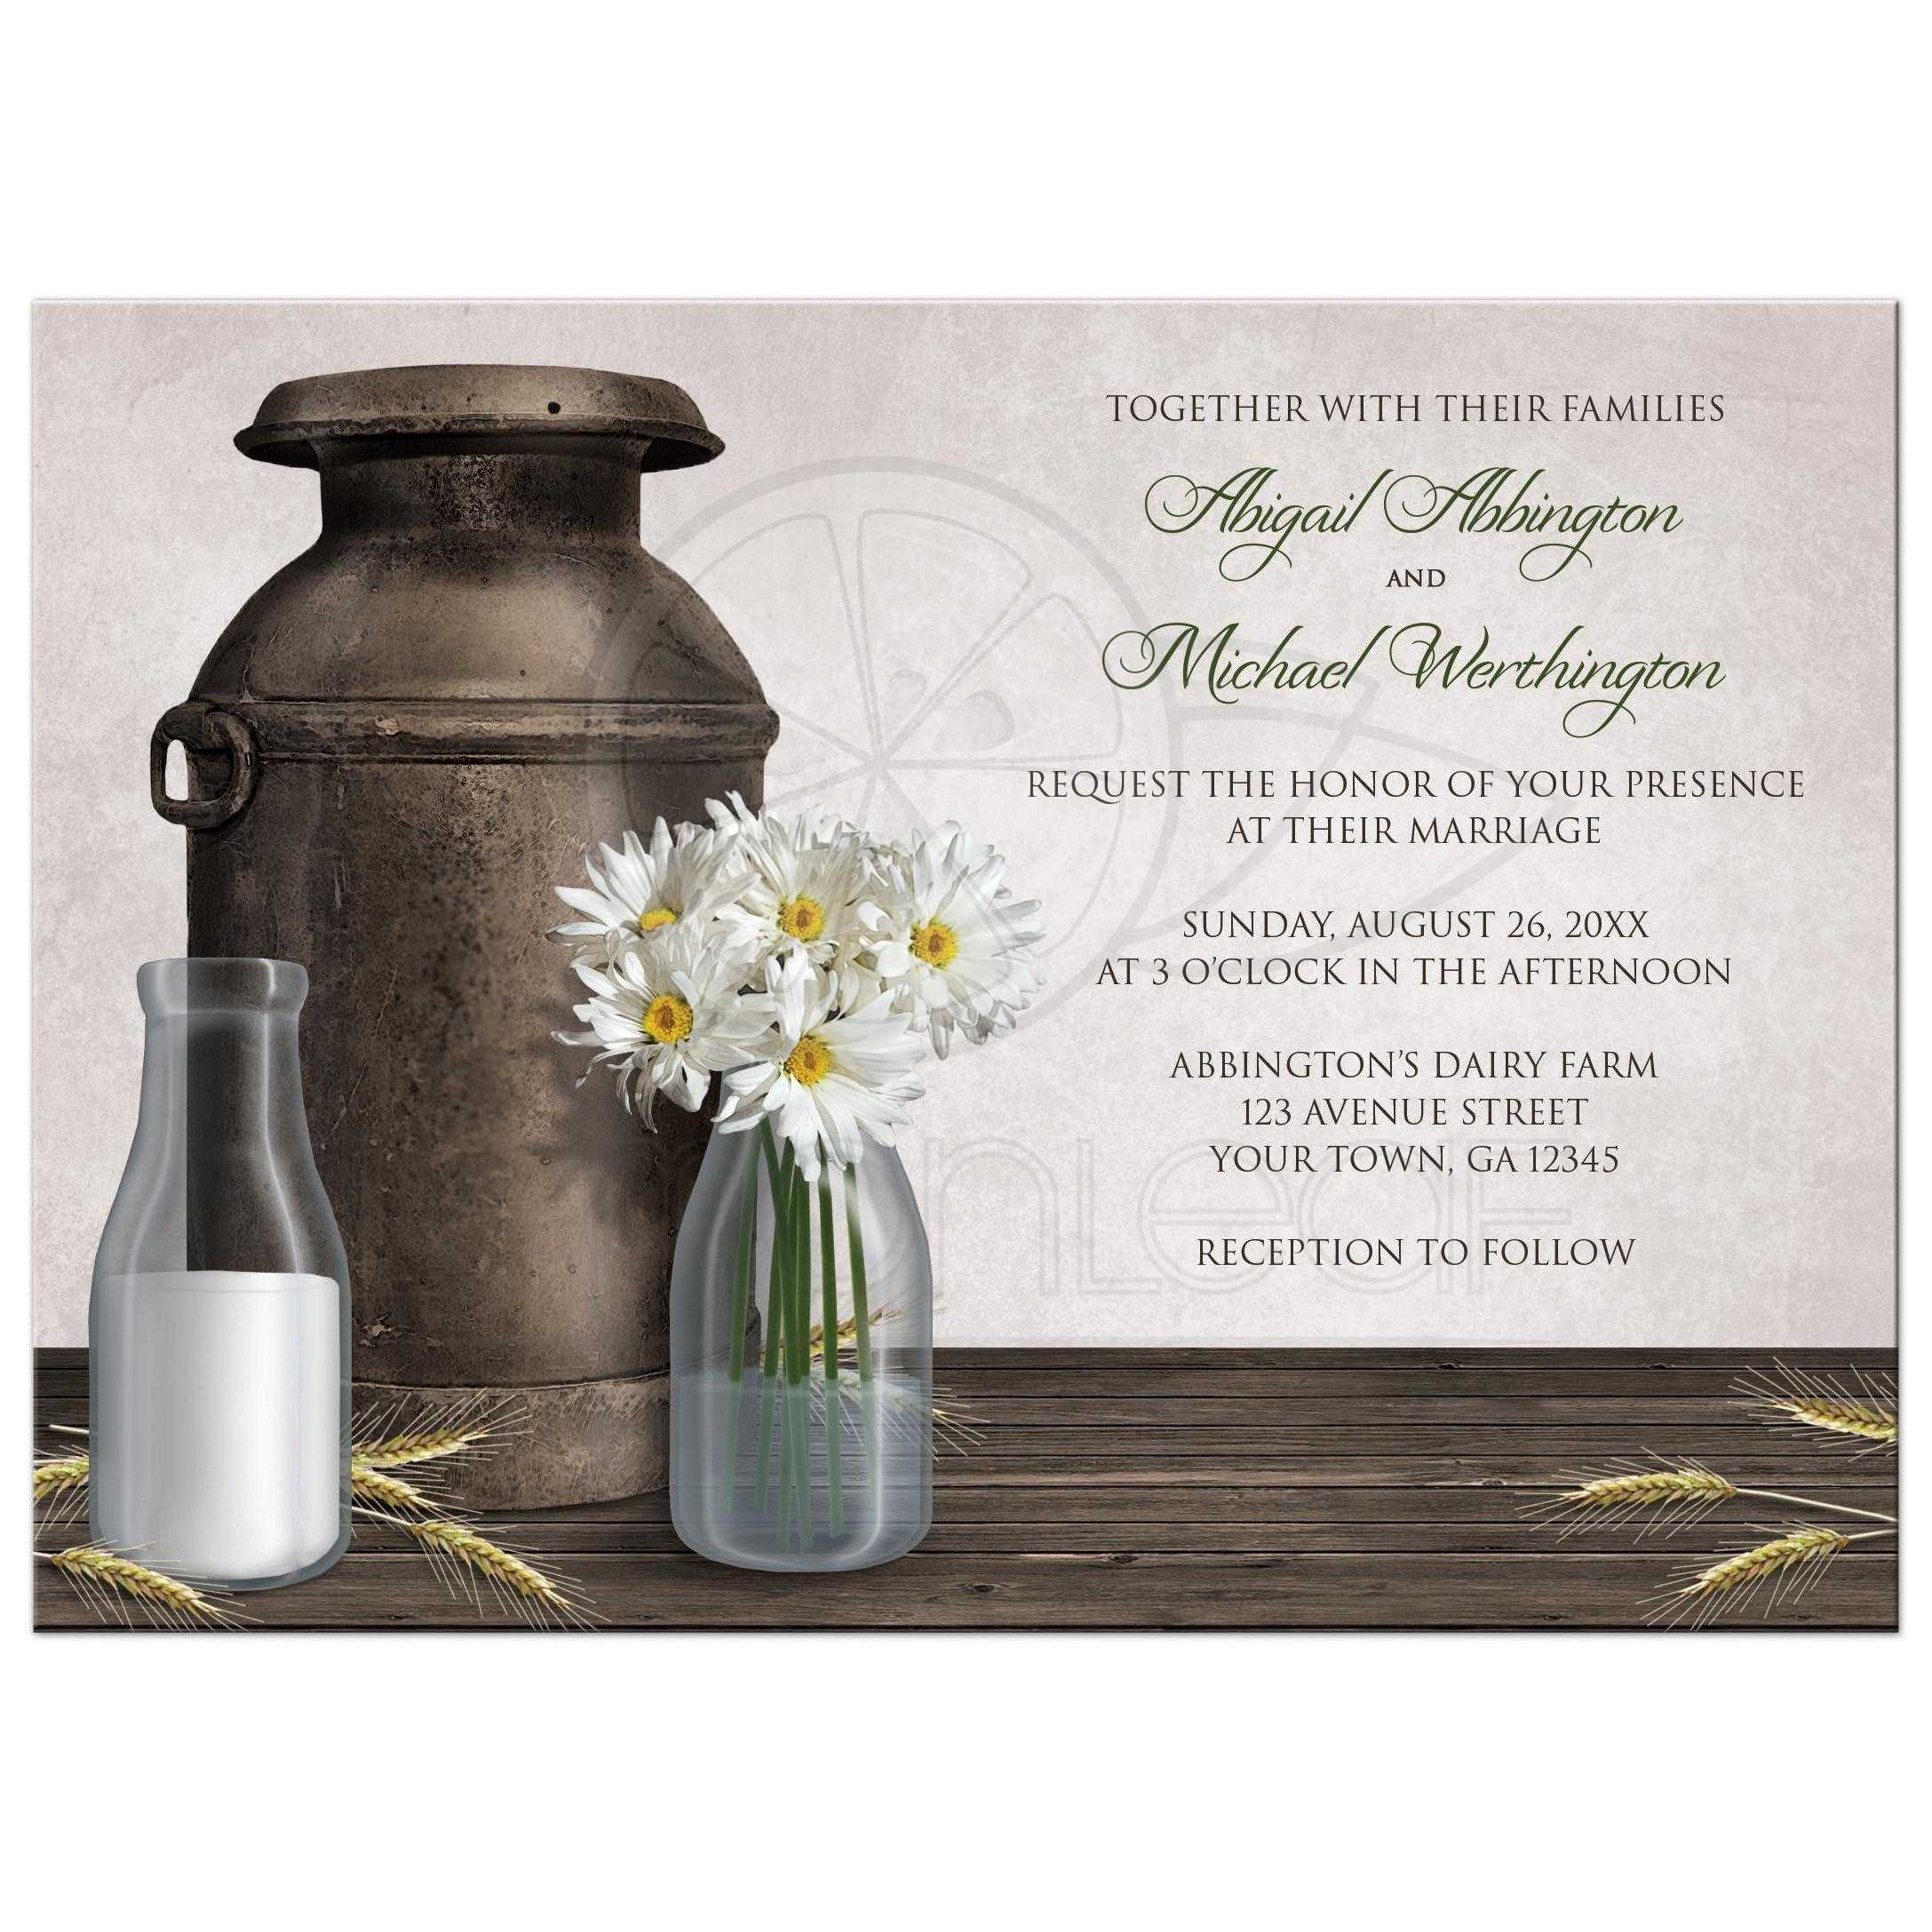 invitations - rustic country dairy farm, Wedding invitations